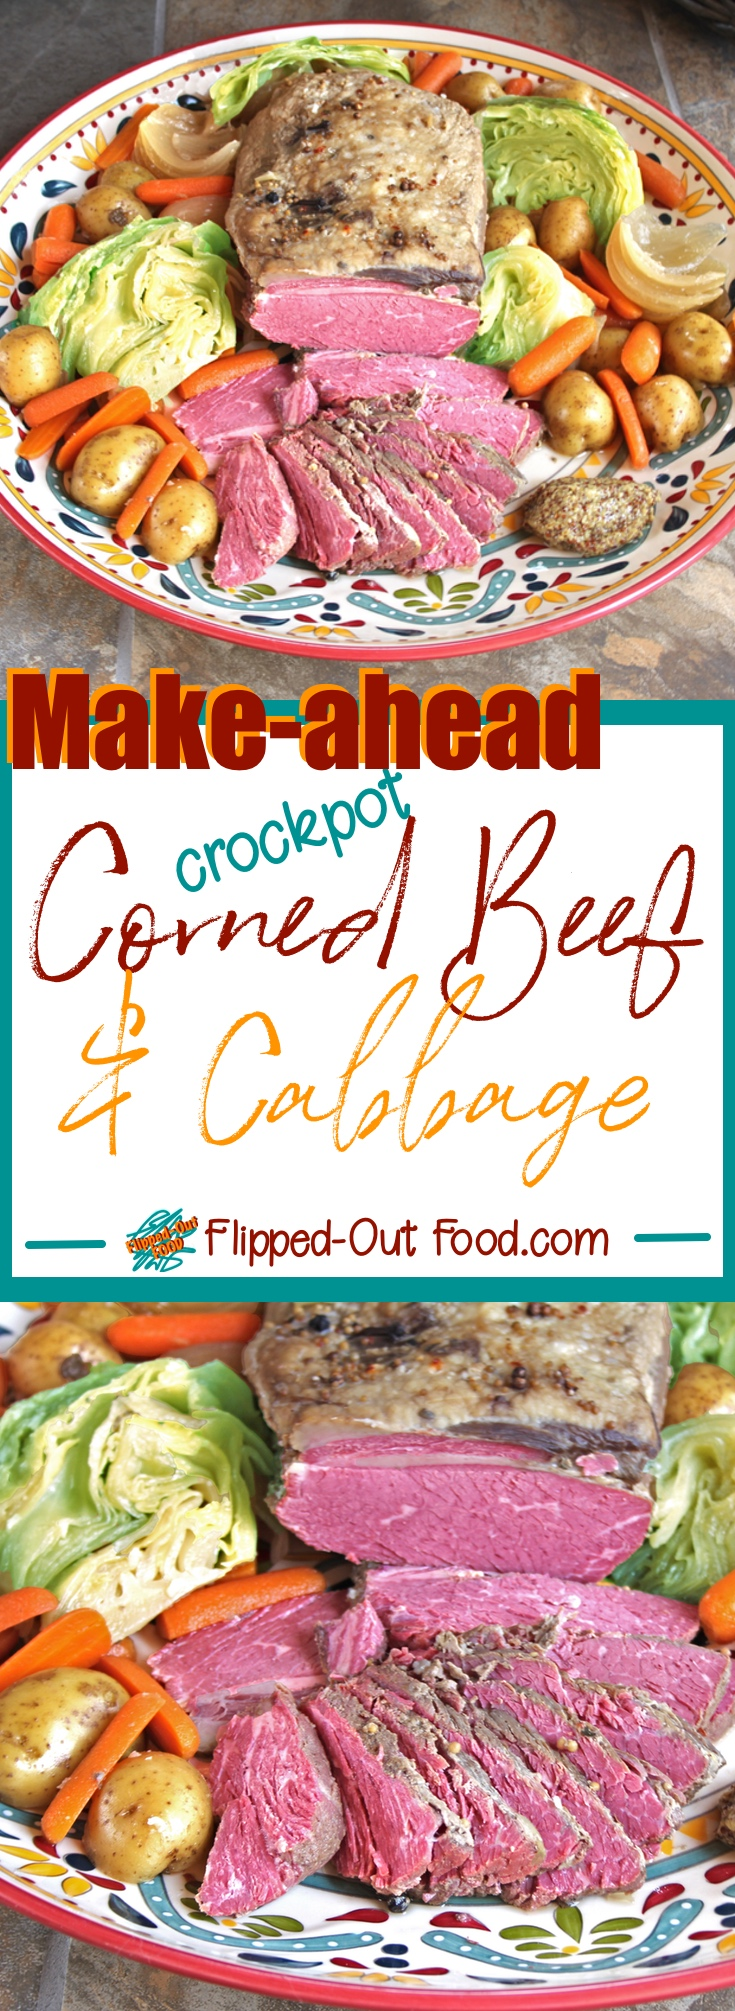 Crockpot Corned Beef & Cabbage is just about the easiest meal you can make, and just the thing for Saint Patrick's Day!